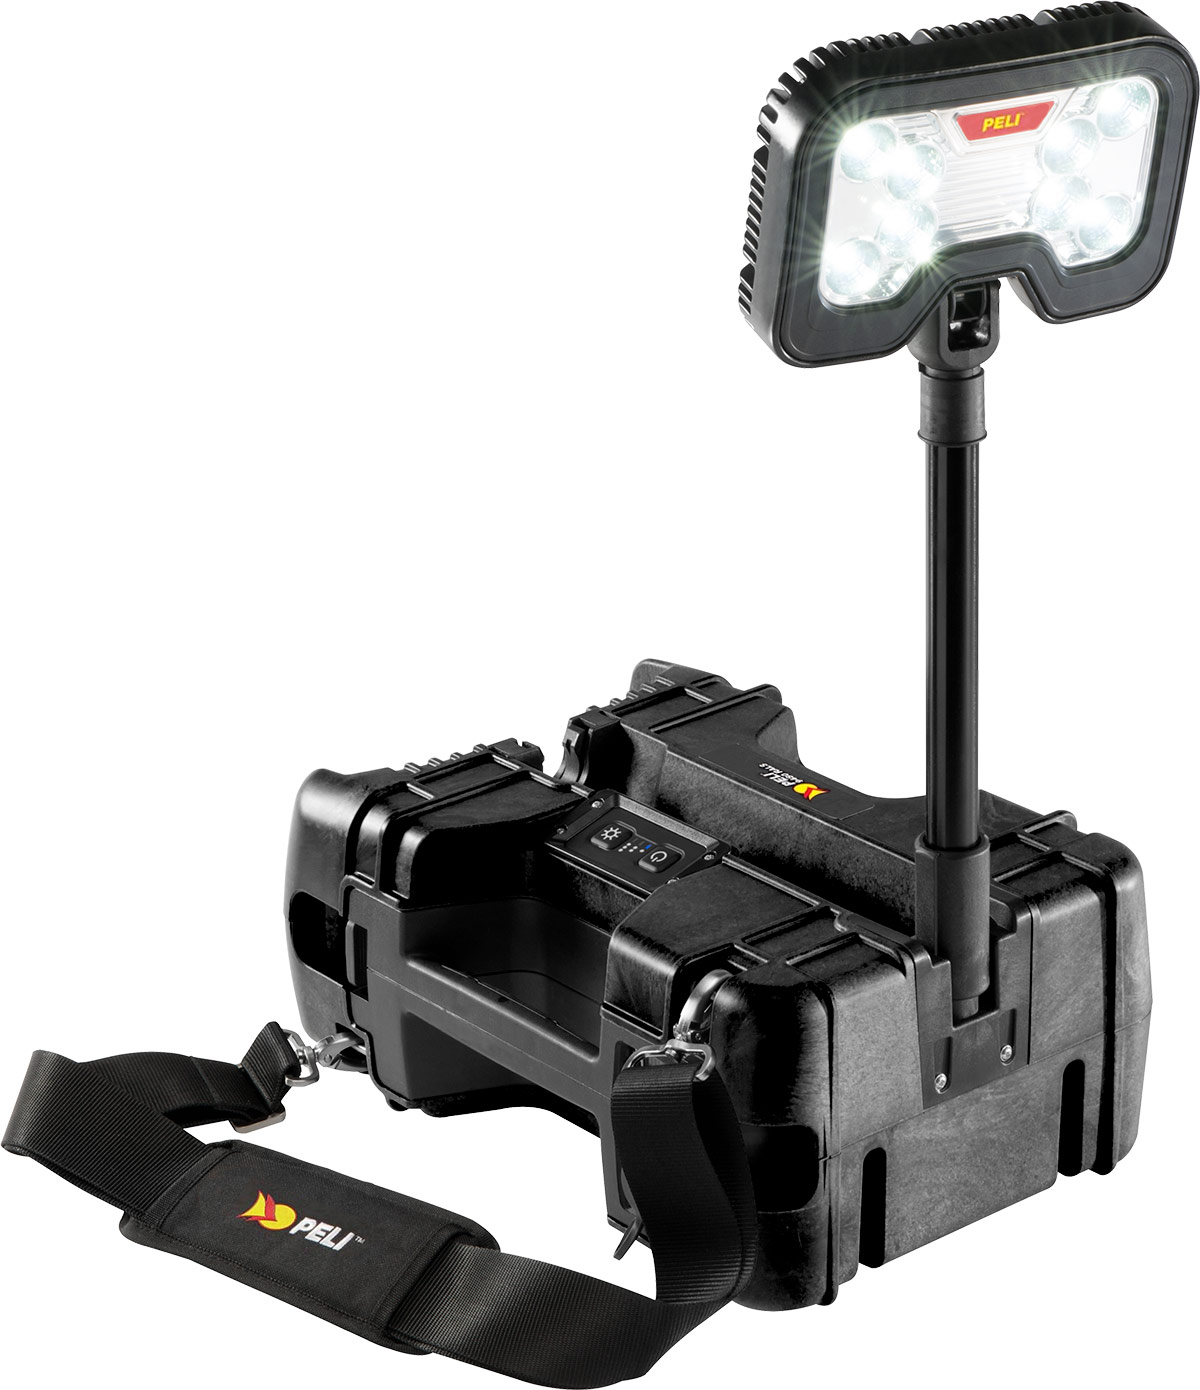 peli 9480 portable remote area light